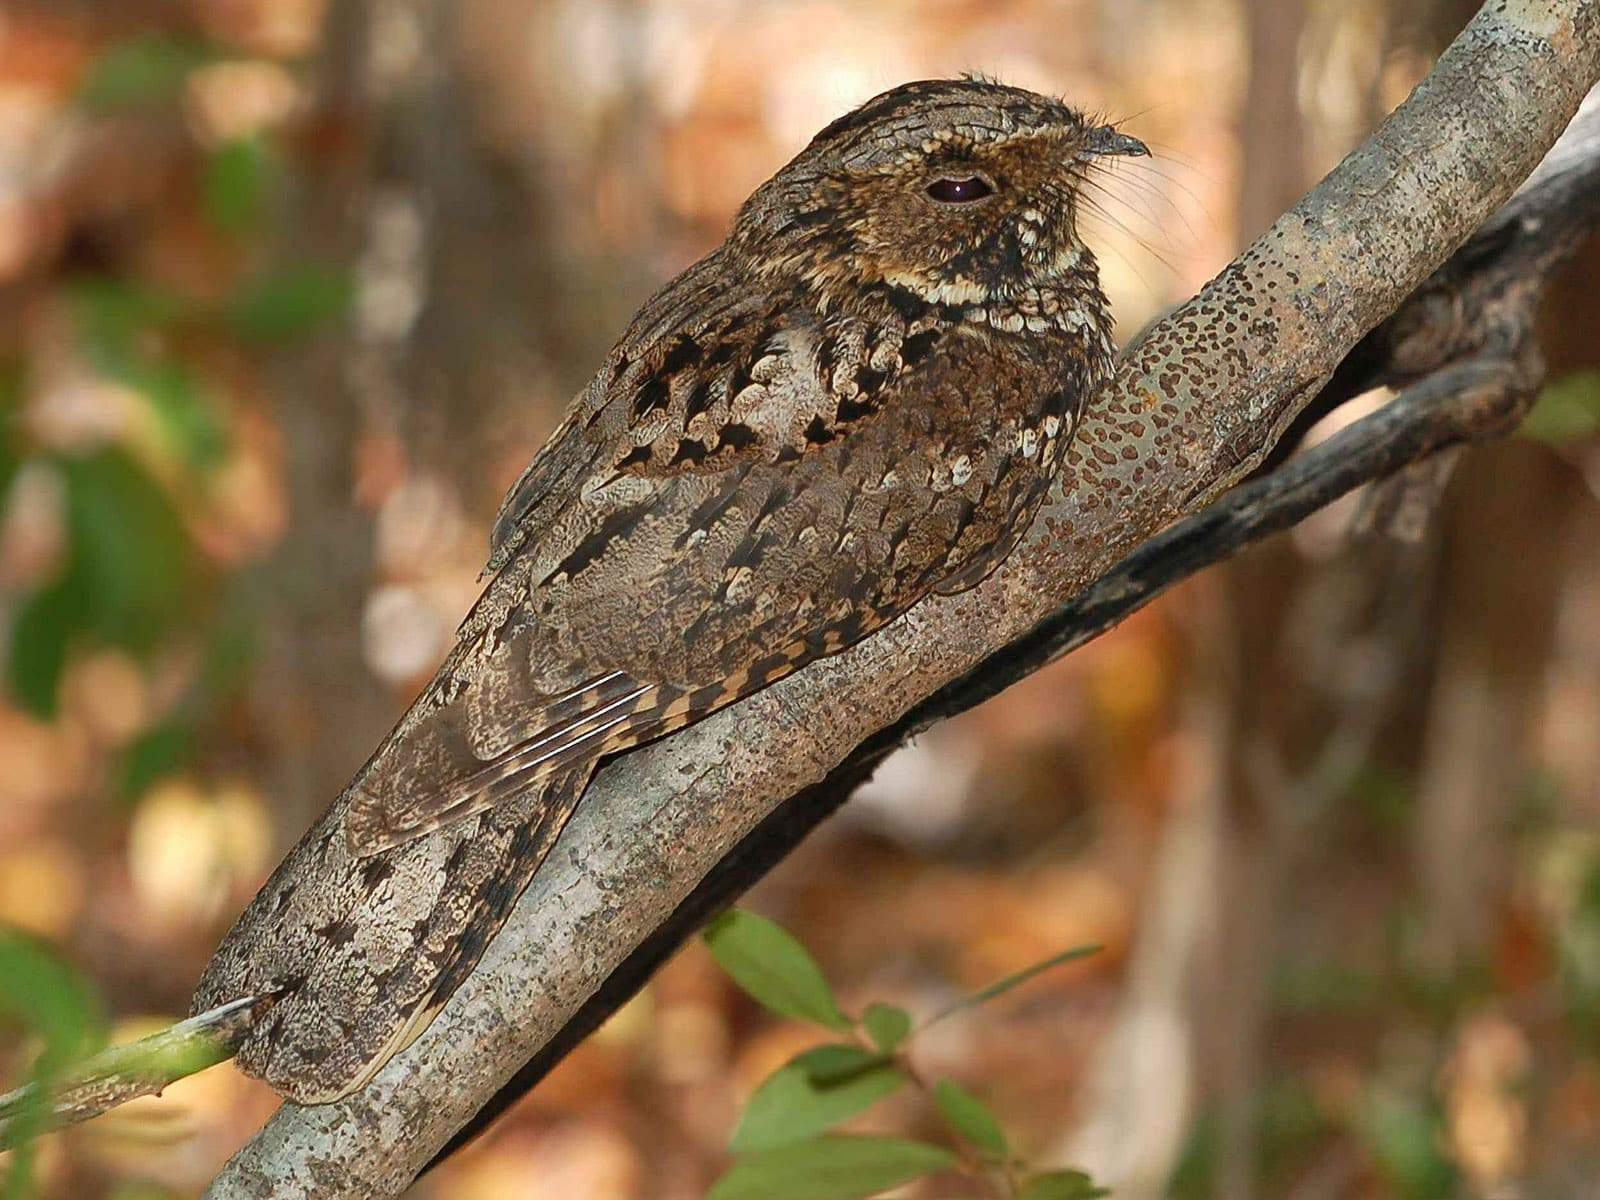 Purbeck Heaths National Nature Reserve Nightjar